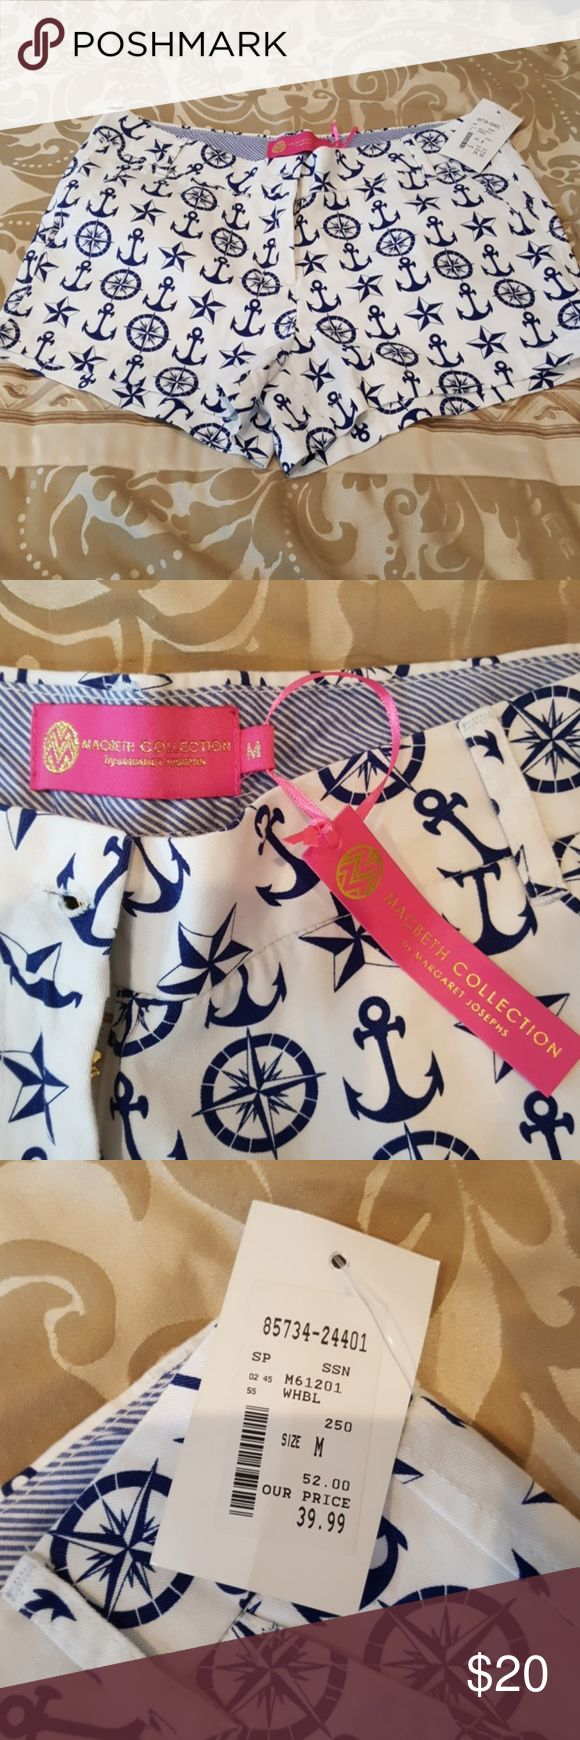 Macbeth collection nautical shorts White shorts with navy anchors ....reposh! I love these! They are just a tad bit small for me! Made by real housewife of nj margaret josephson, new with tags! macbeth collection Shorts